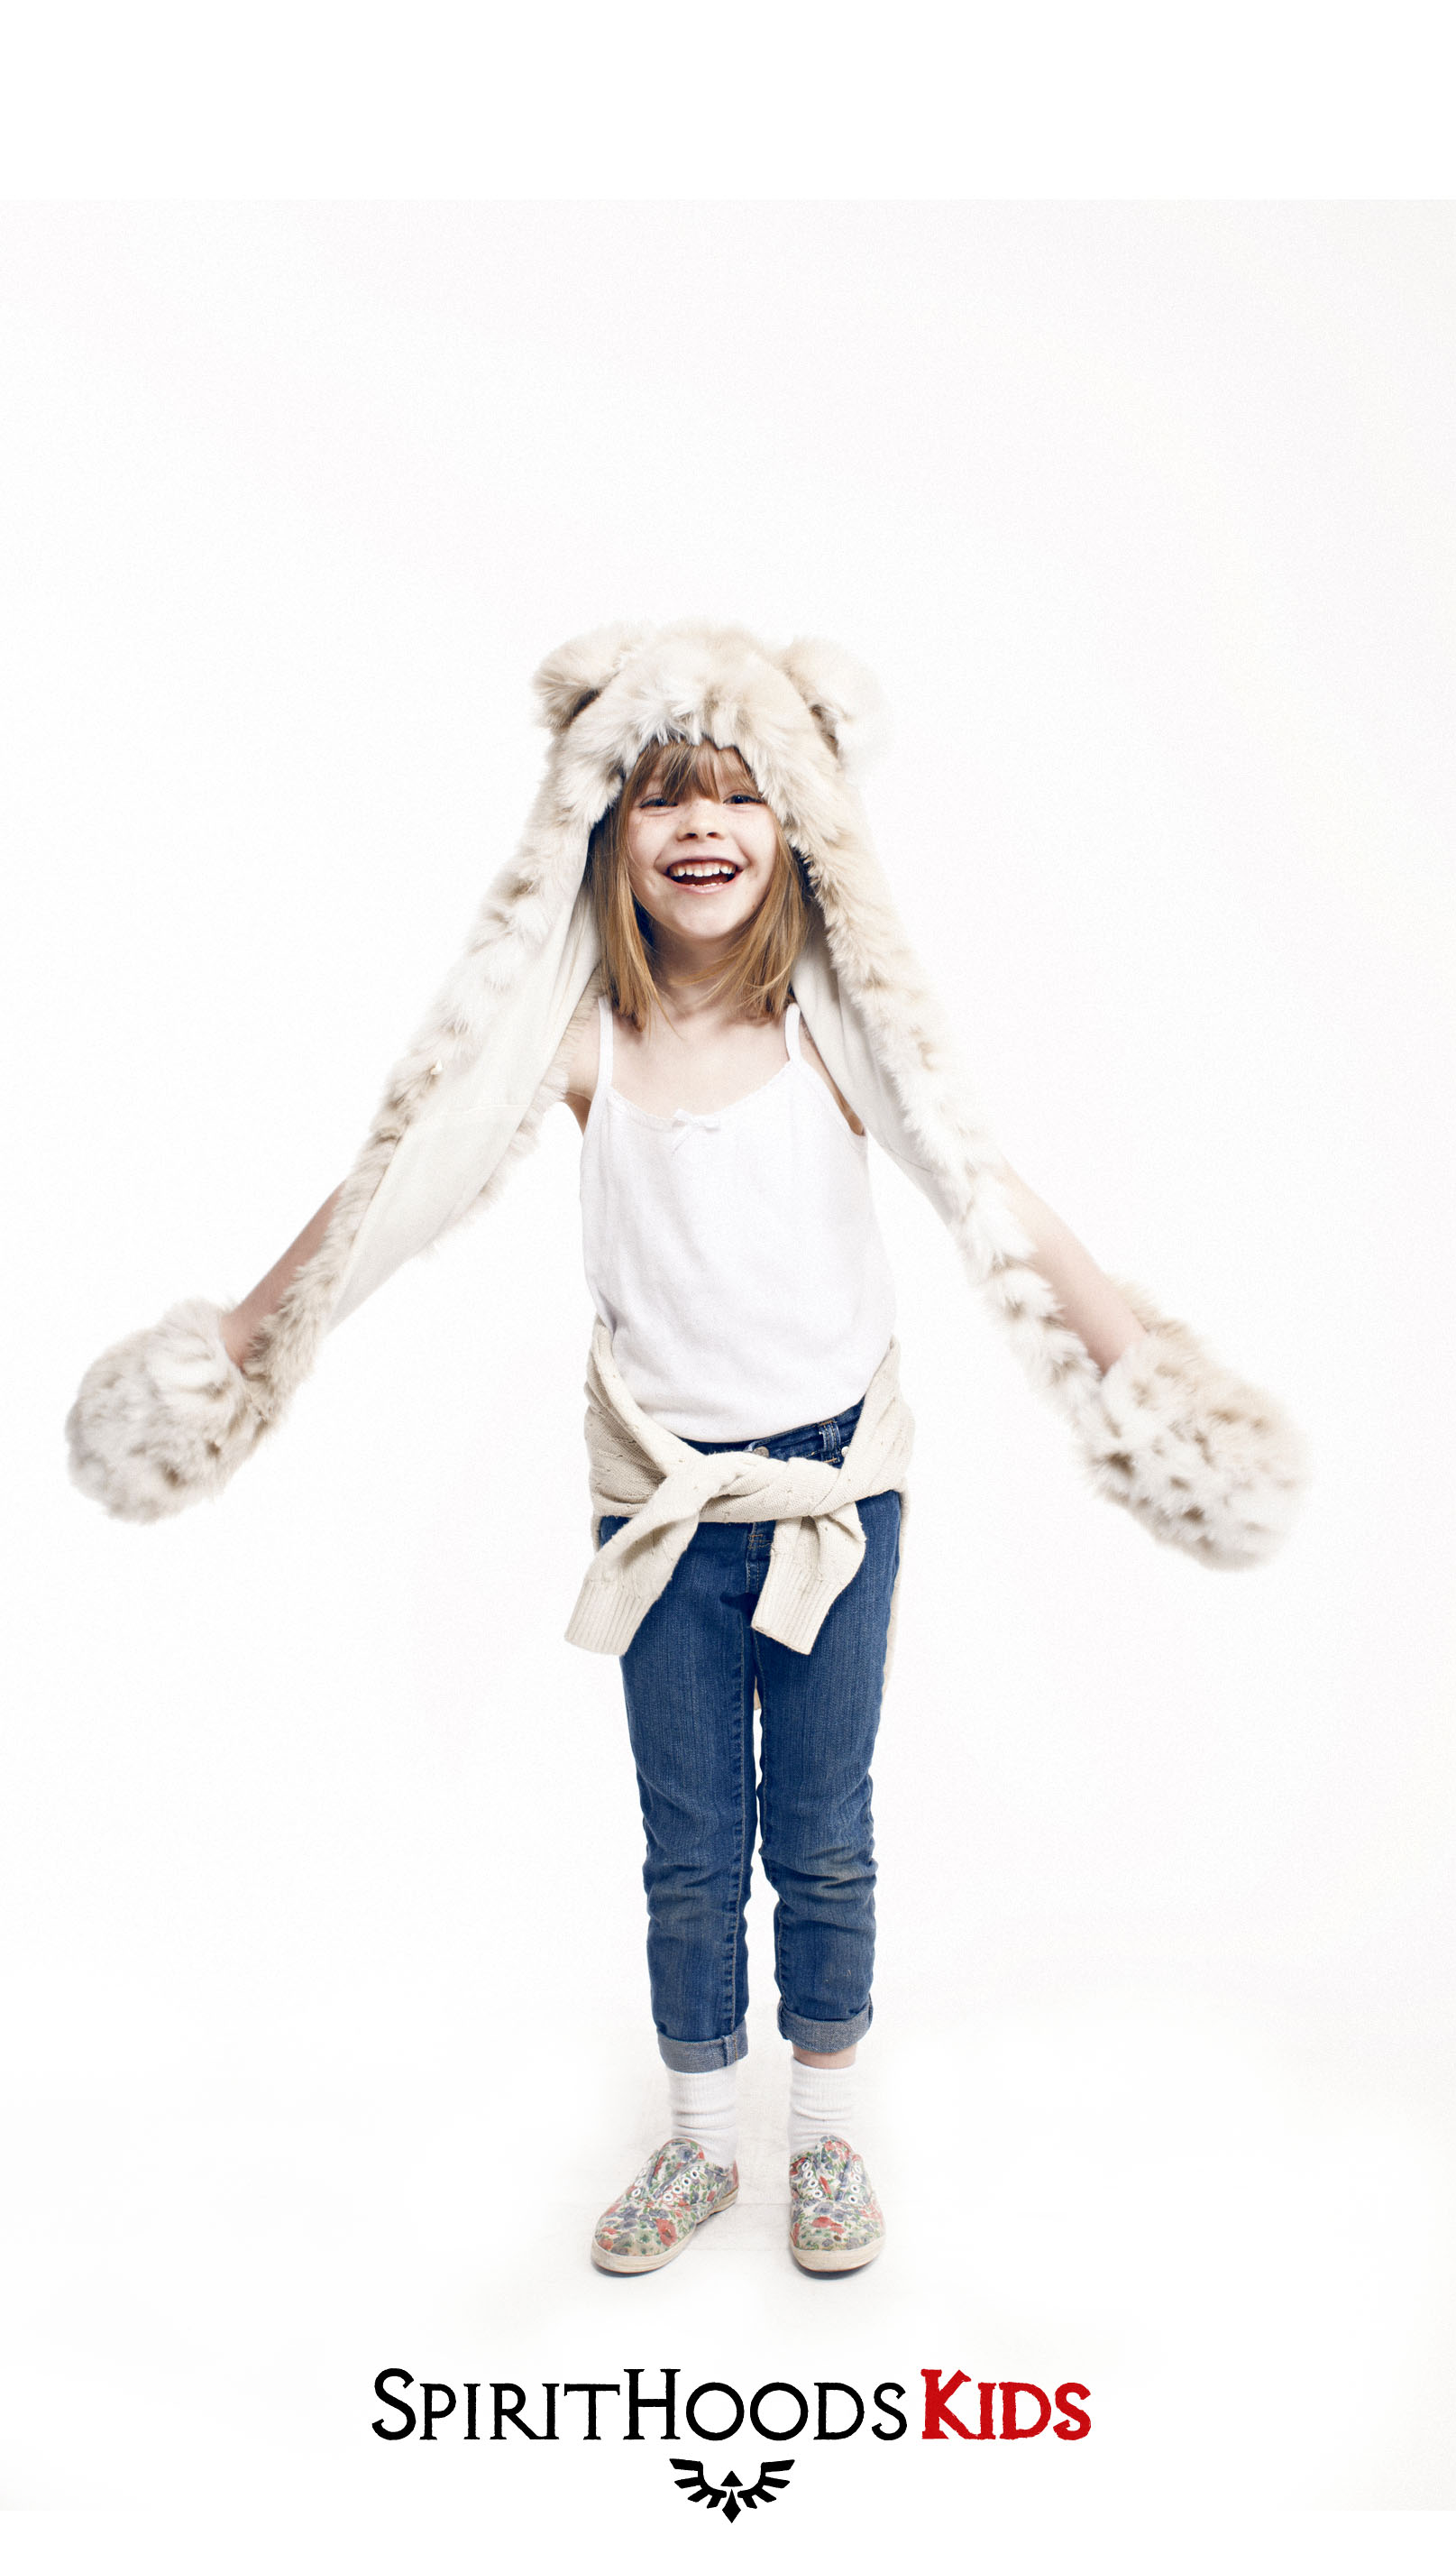 Spirithoods_Kids_Single_03.jpg